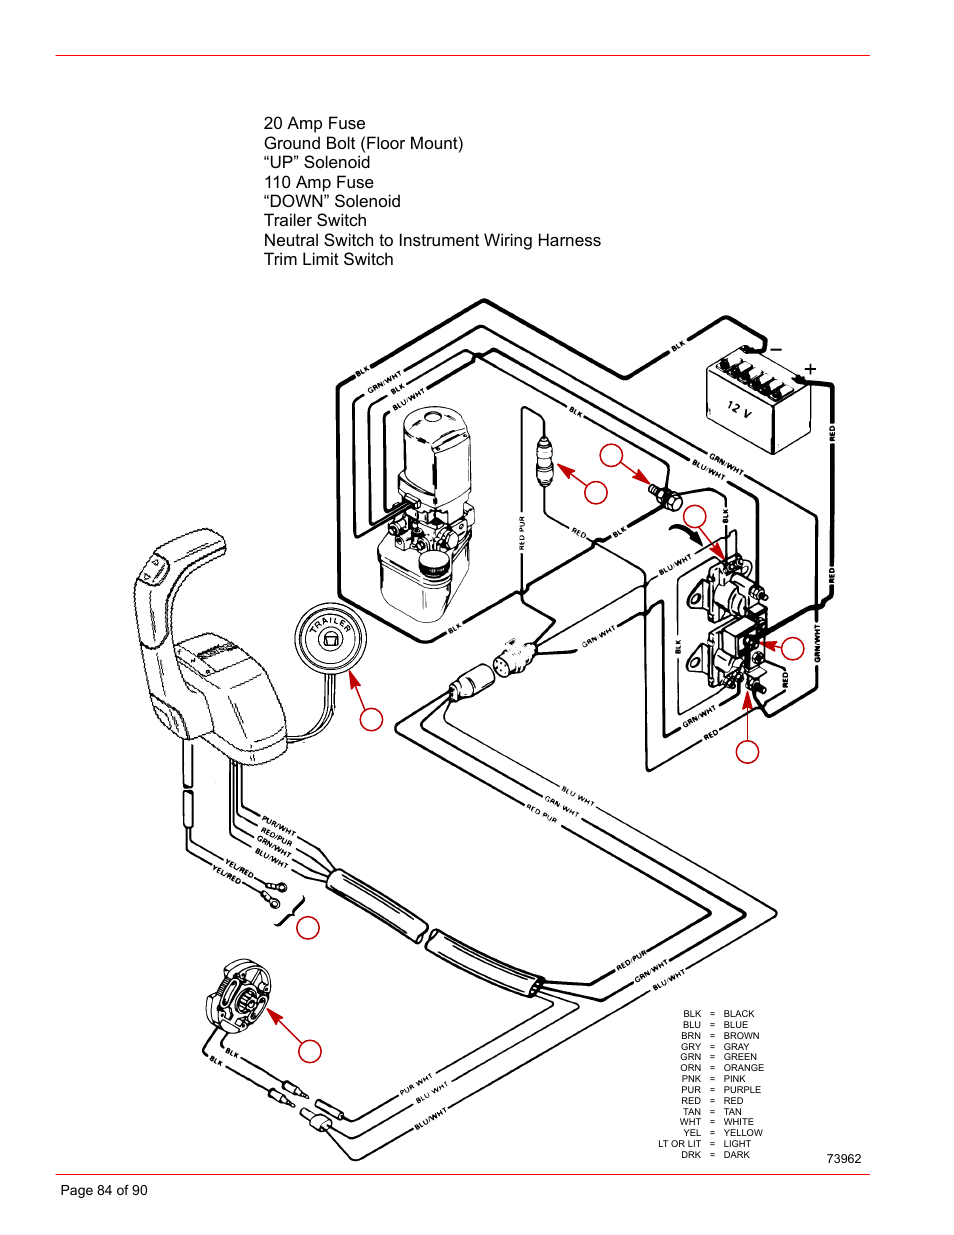 Power Trim System Wiring Diagram Mercury Installation Manual D73l Limit Switch Schematic D Tronic User Page 84 90